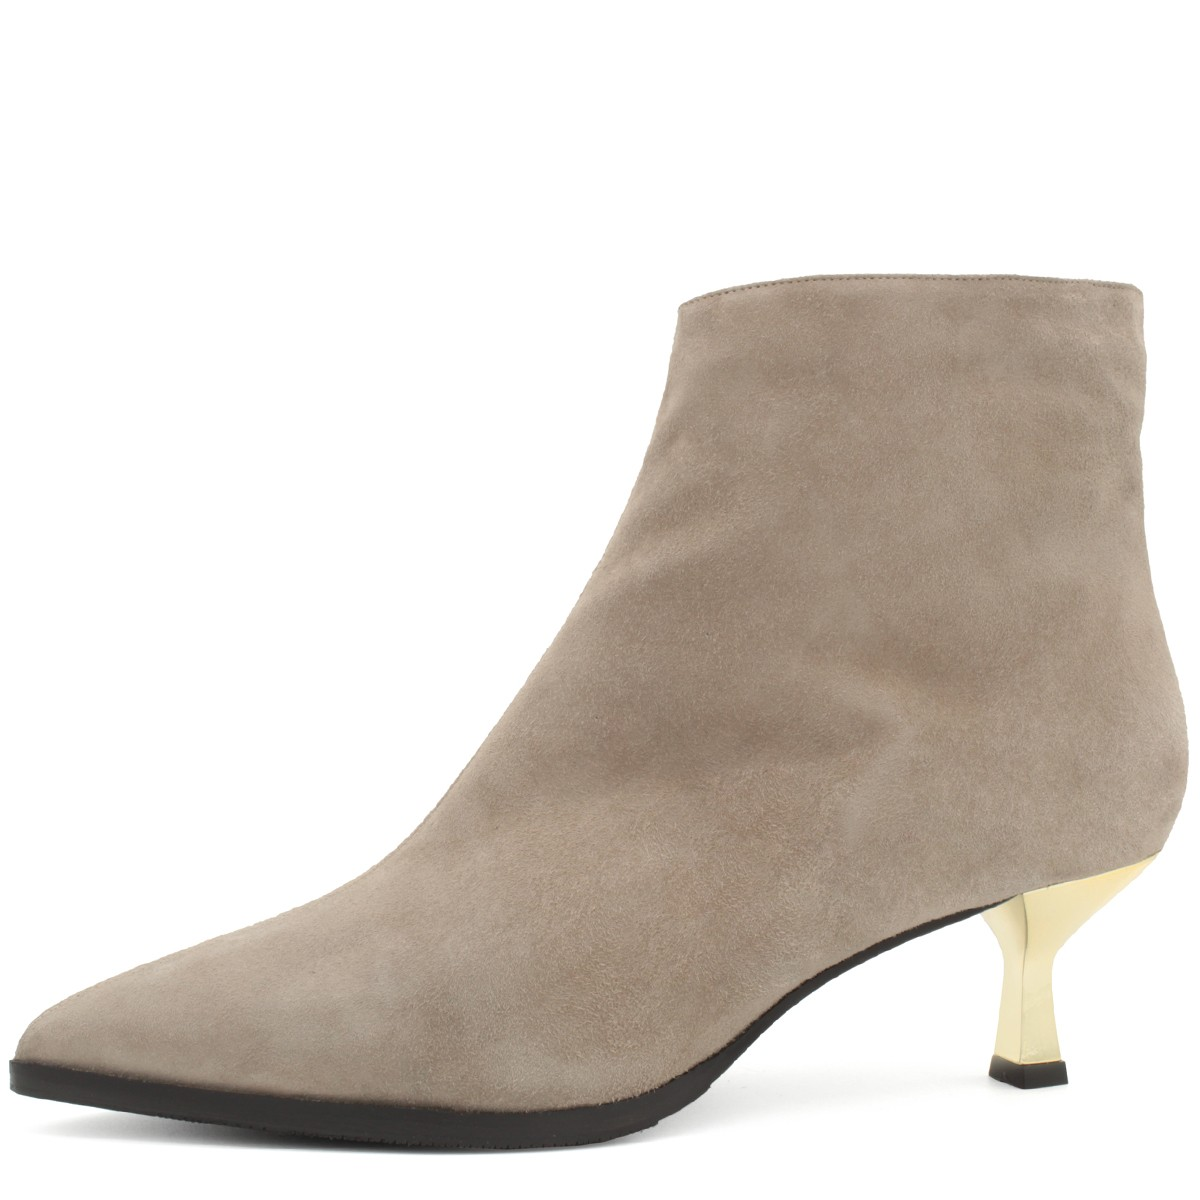 TAUPE SUEDE STYLISH WOOL FUR LINED ANKLE BOOTS